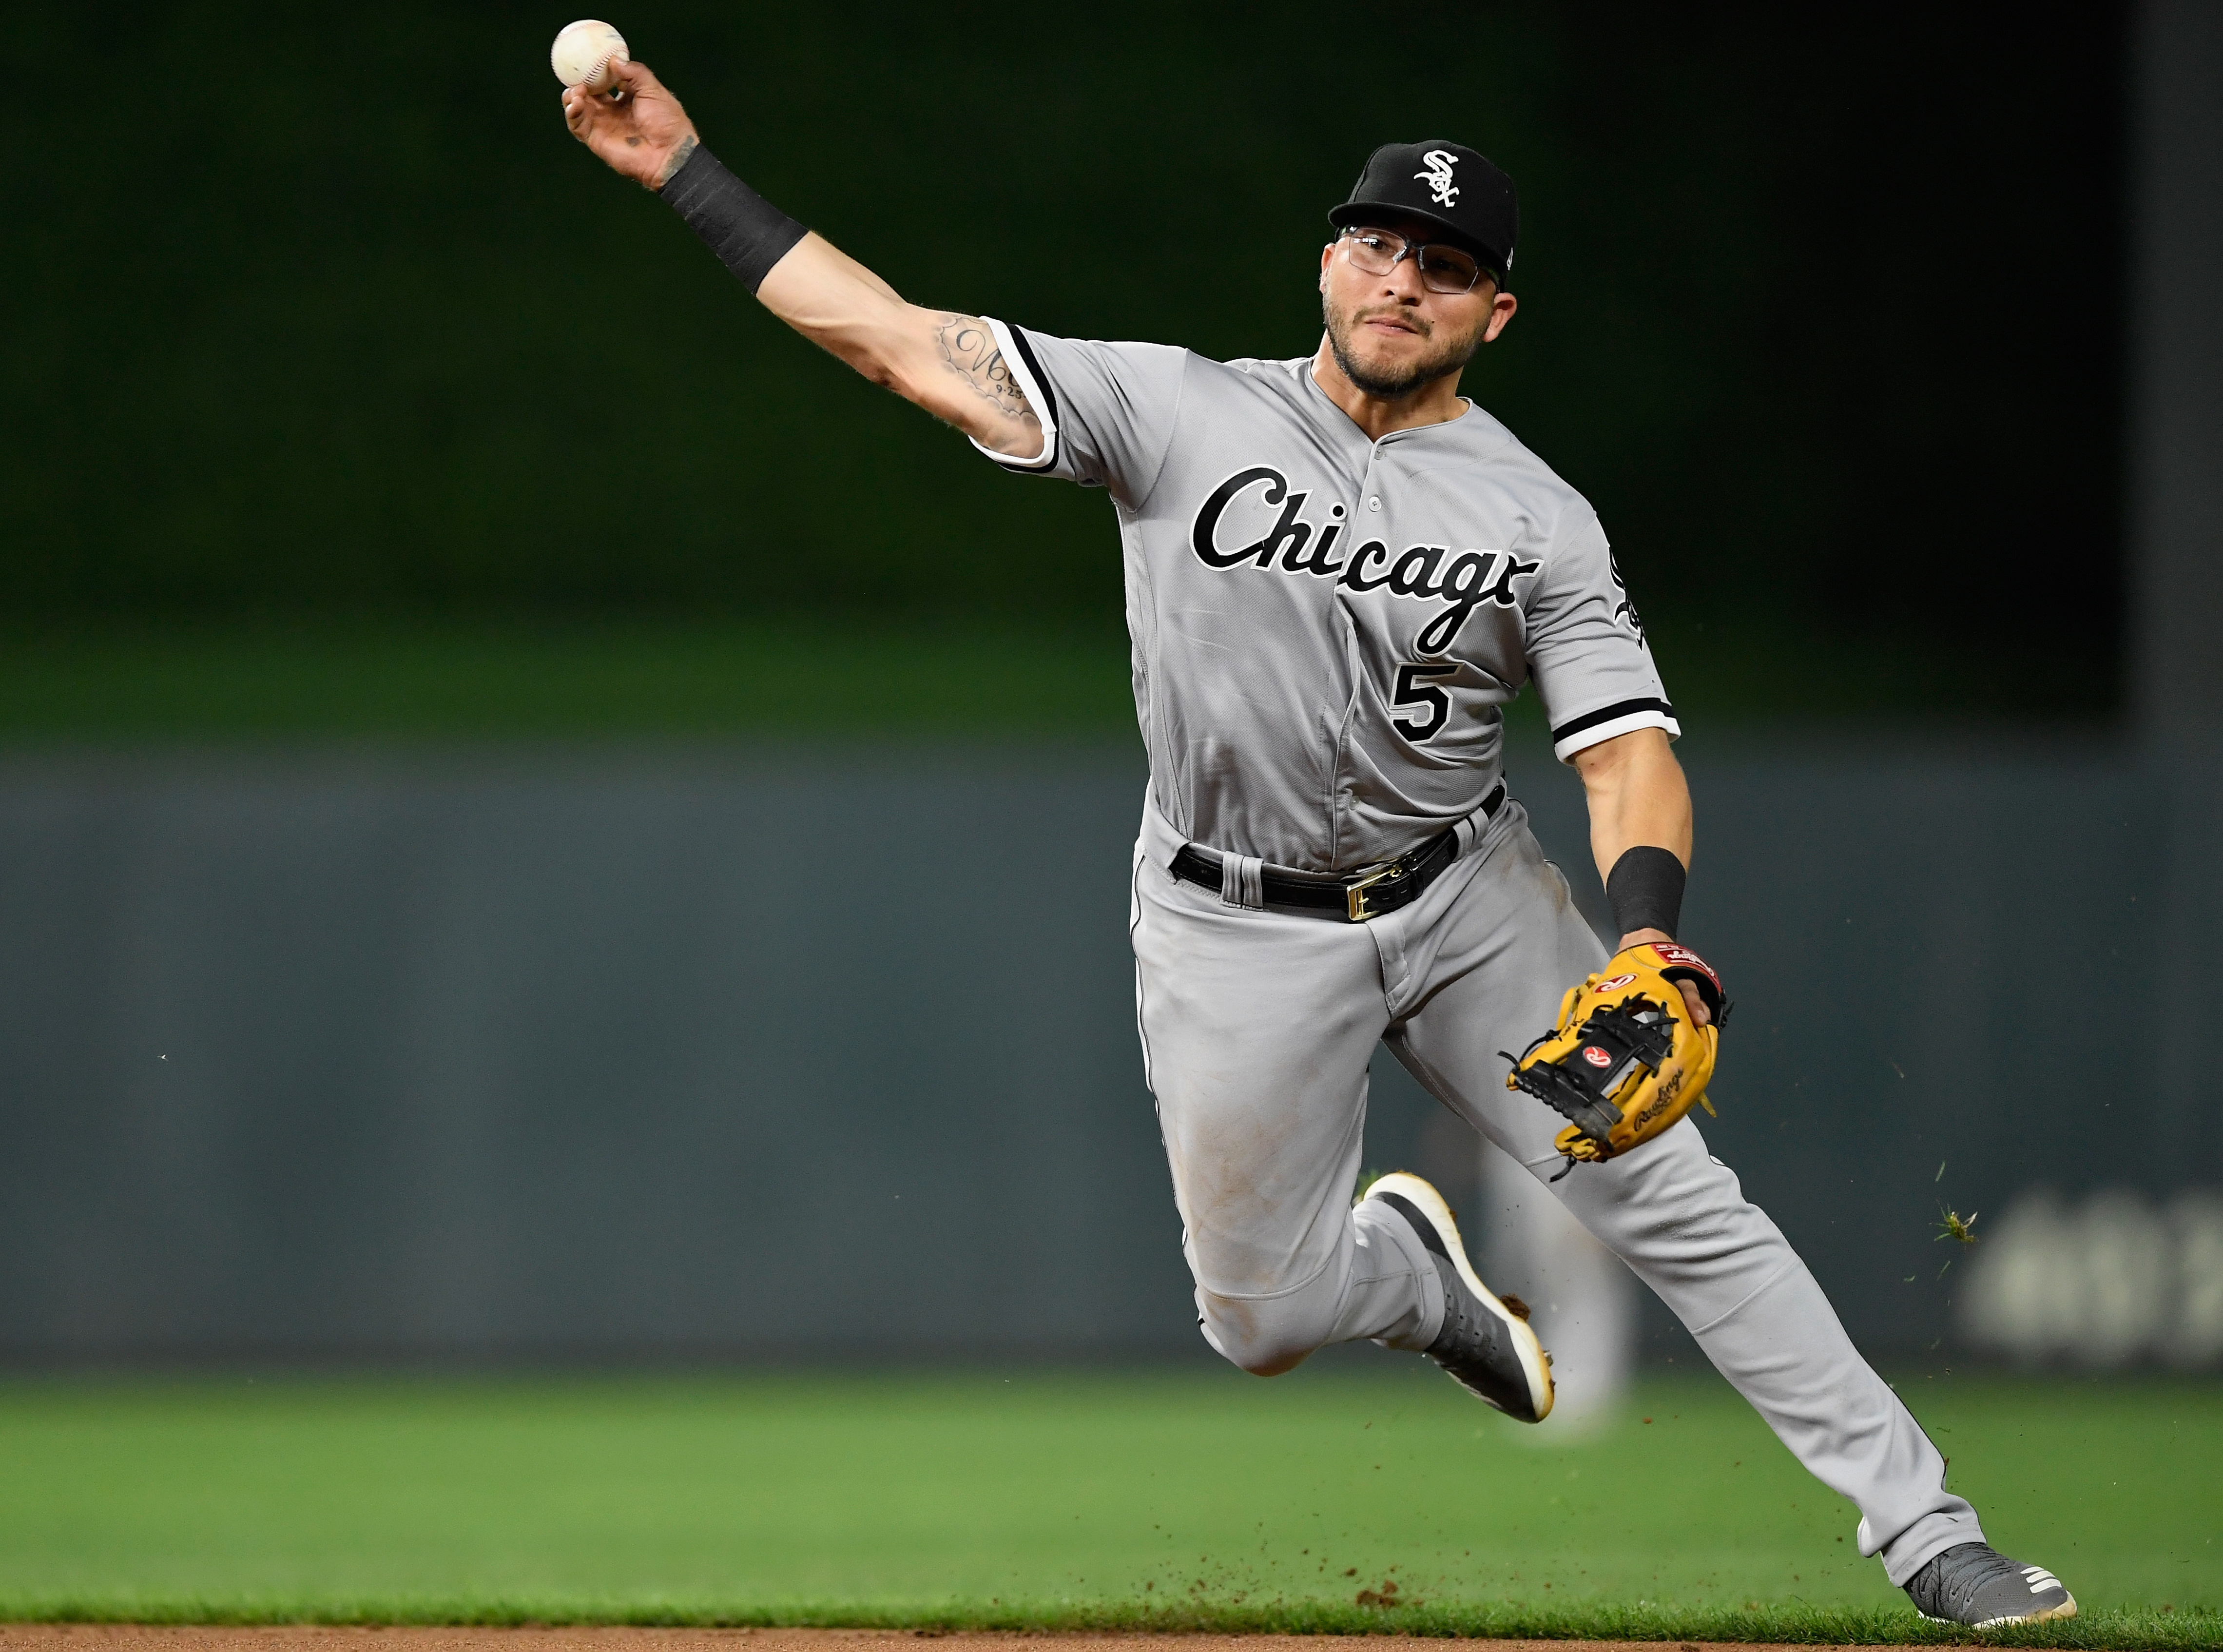 White Sox second baseman Yolmer Sanchez has been nominated for a Gold Glove.